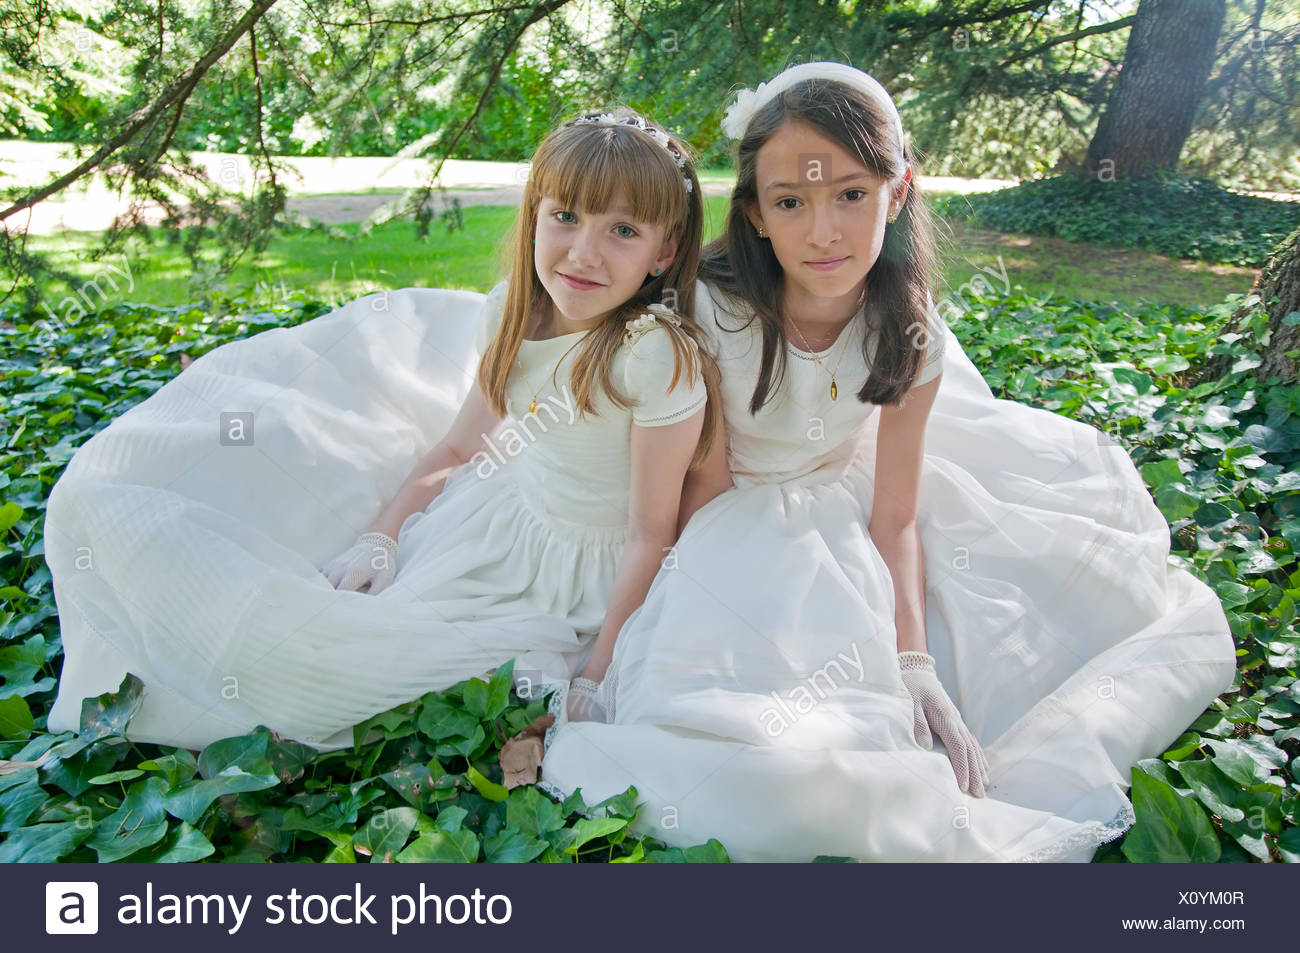 Child Picture Beautiful Princess Stock Photos & Child Picture ...